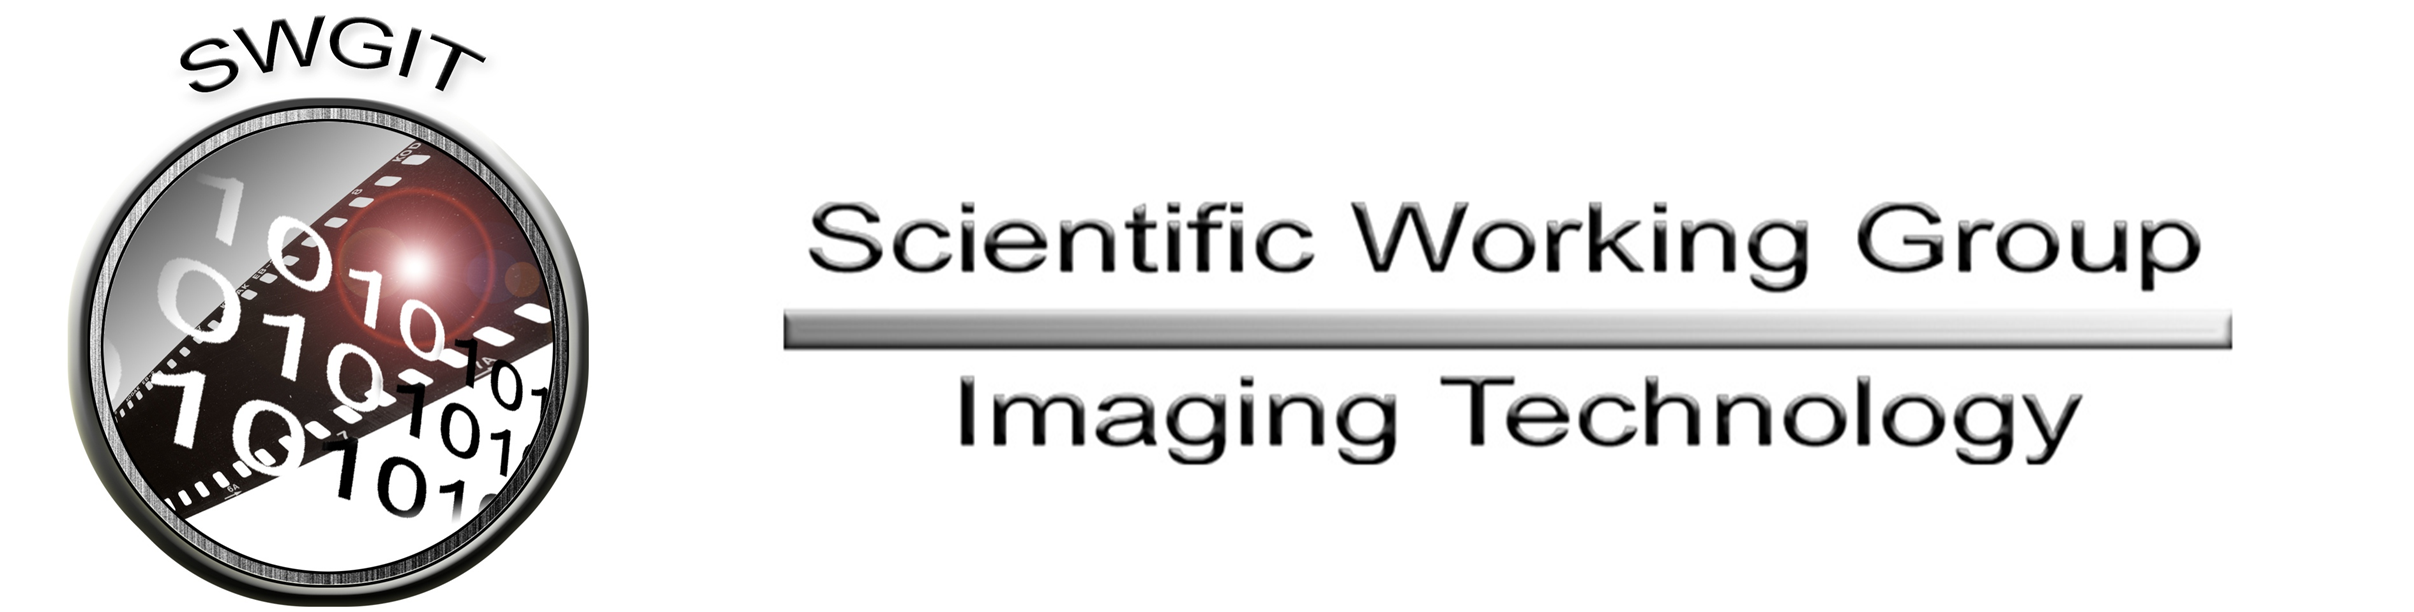 Scientific Working Group on Imaging Technology (SWGIT)